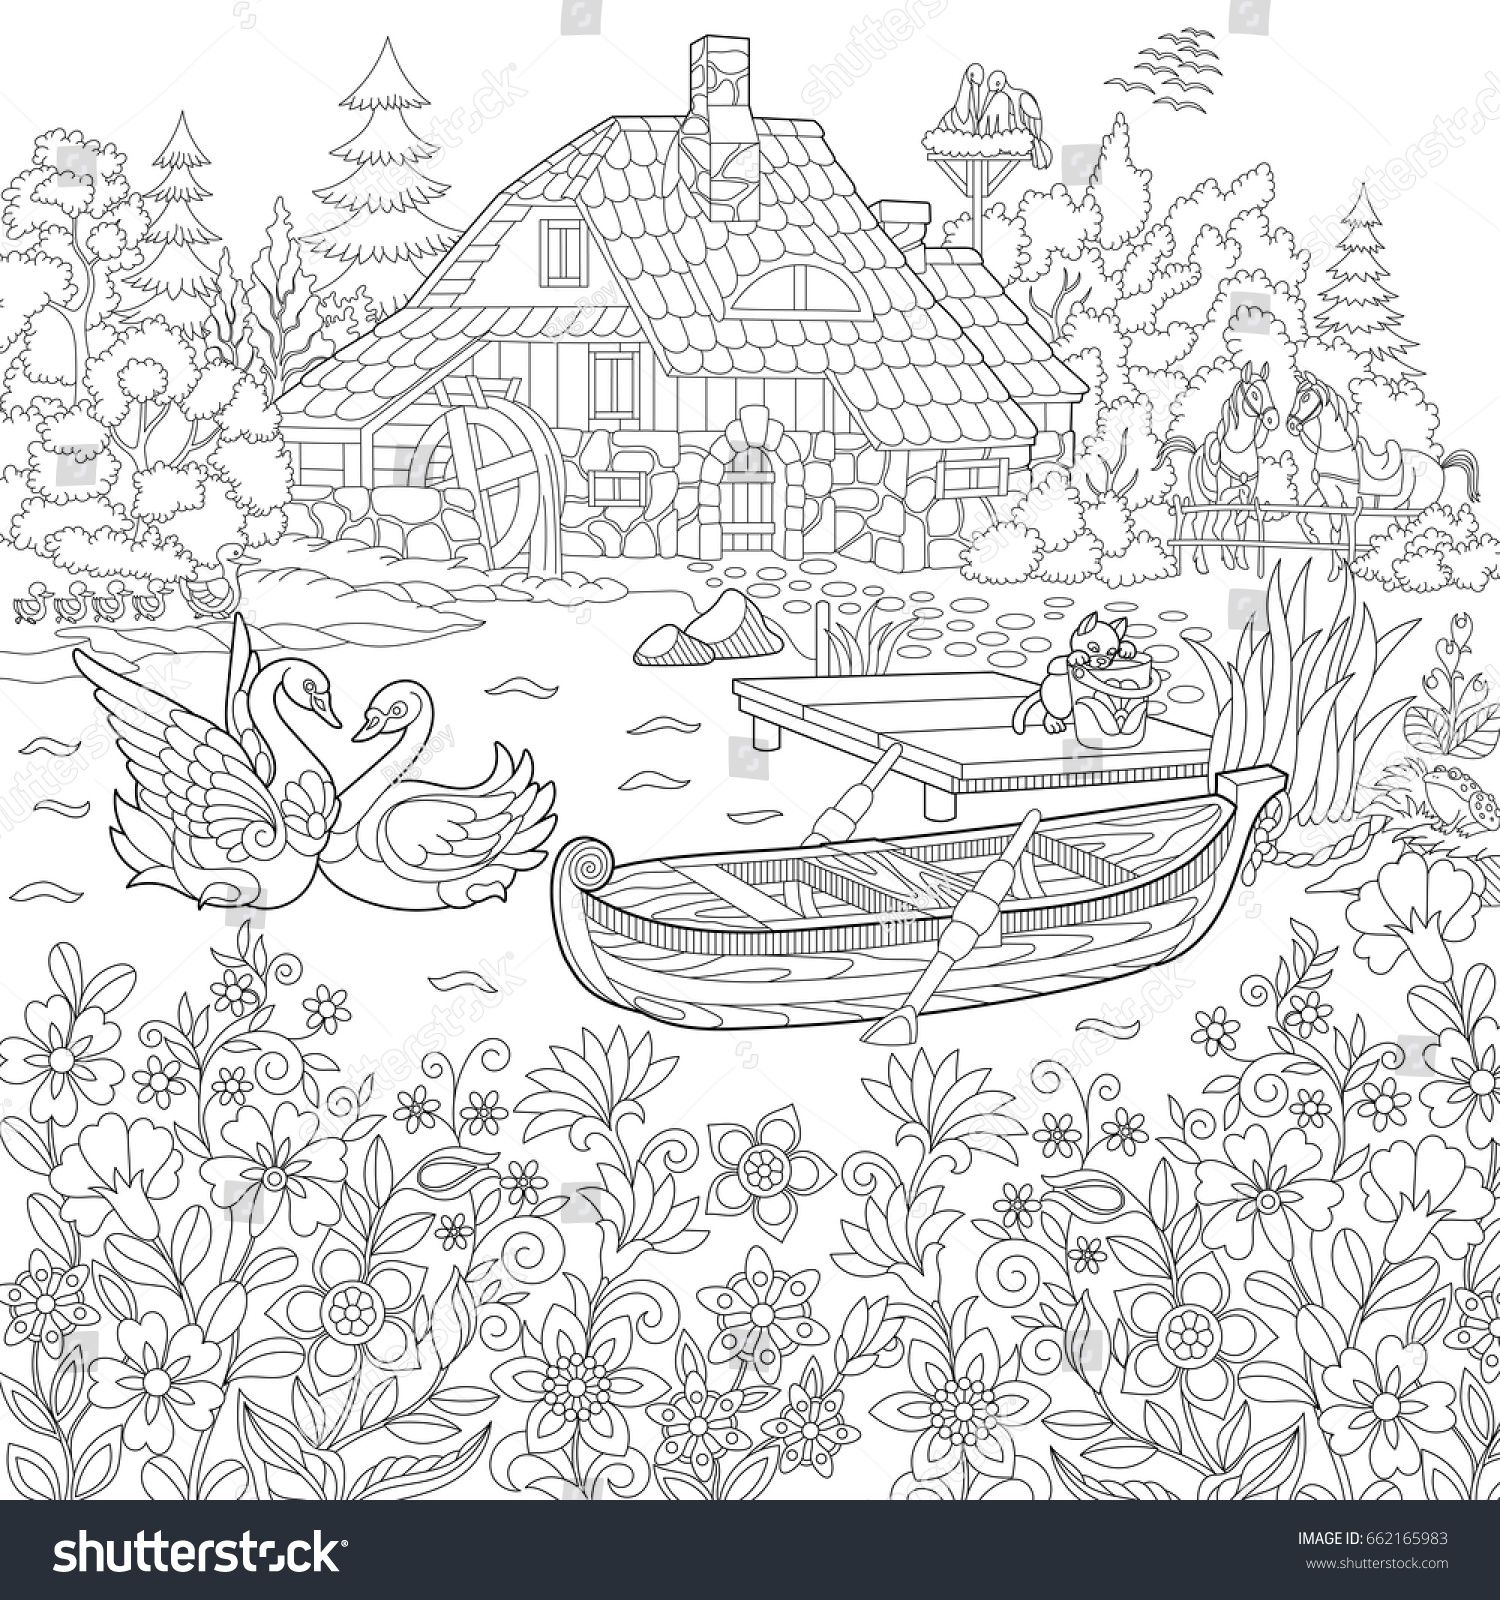 Coloring Book Page Of Rural Landscape Flower Meadow Lake Farm